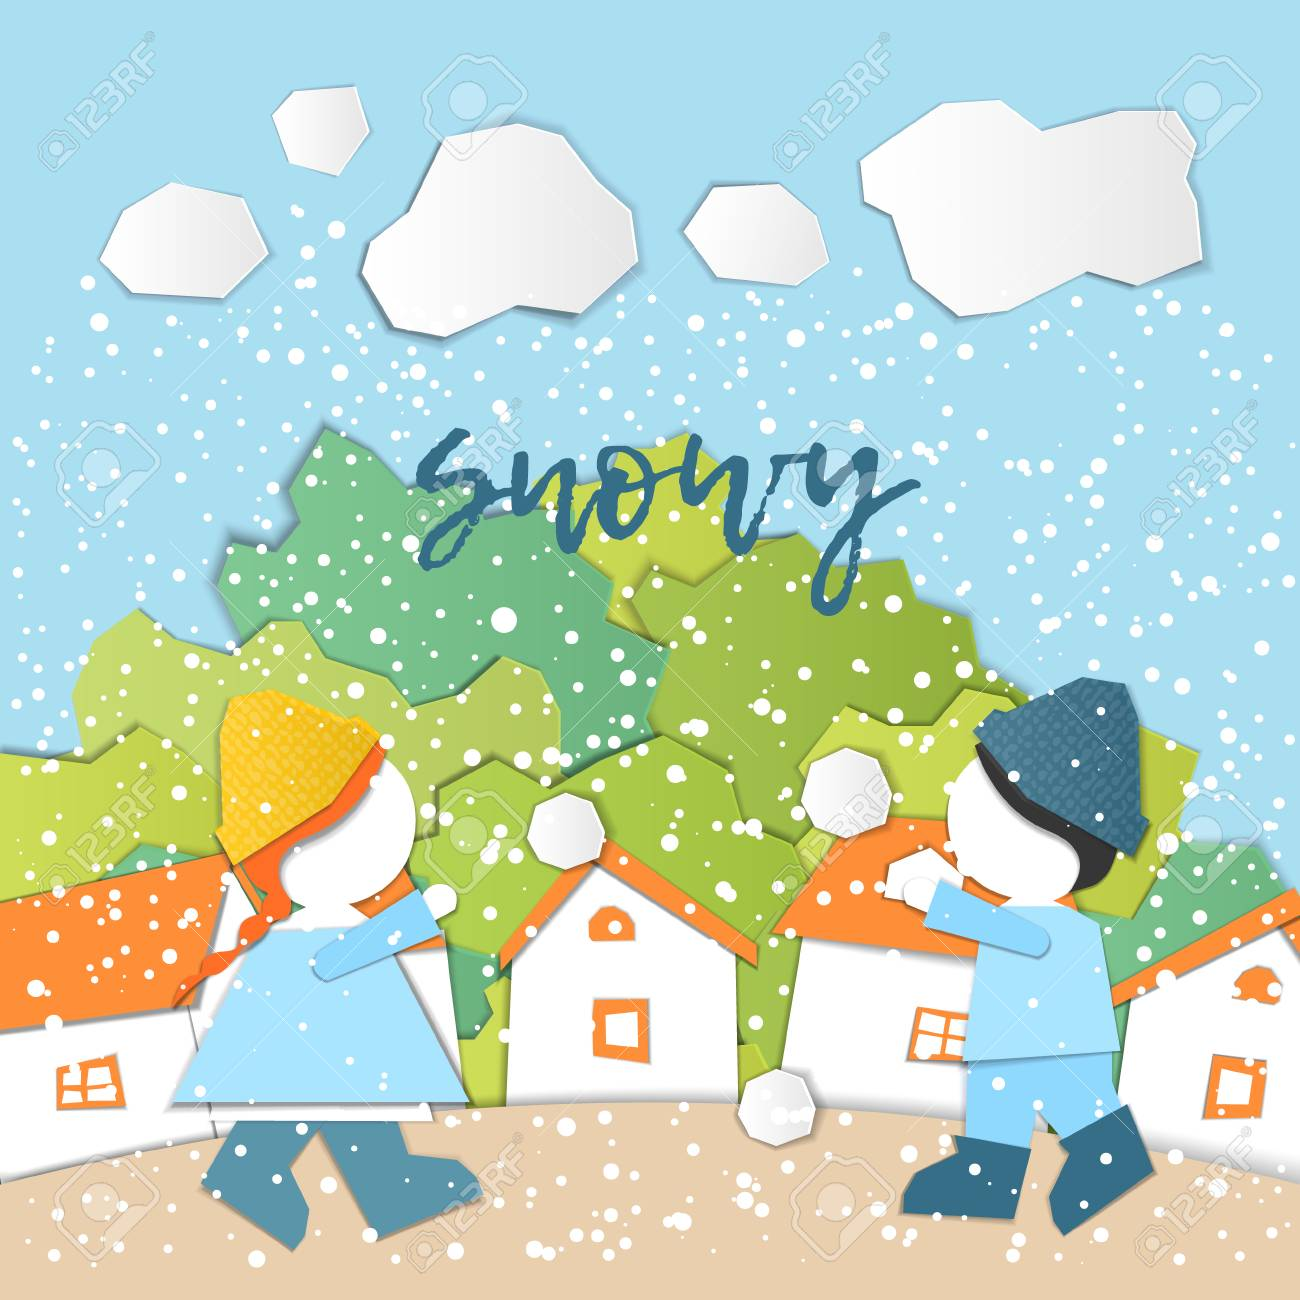 hight resolution of weather forecast in papercut style girl and boy outdoors on a snowy day children s applique style